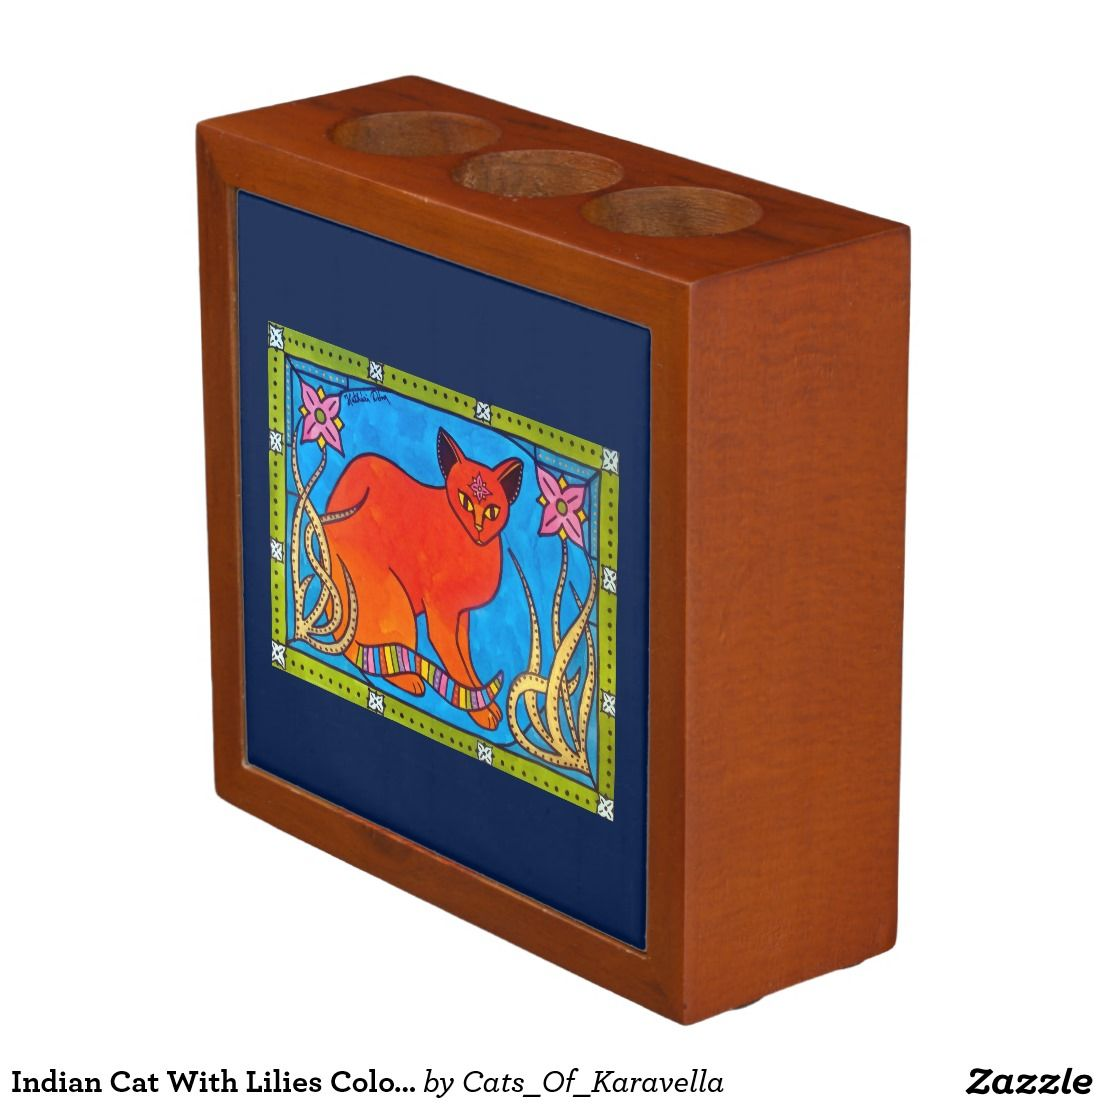 Indian Cat With Lilies Colorful Cat Design Pencil/Pen Holder. Cat Art by Dora Hathazi Mendes from Cats Of Karavella Collection. by #dorahathazi for #catlovers